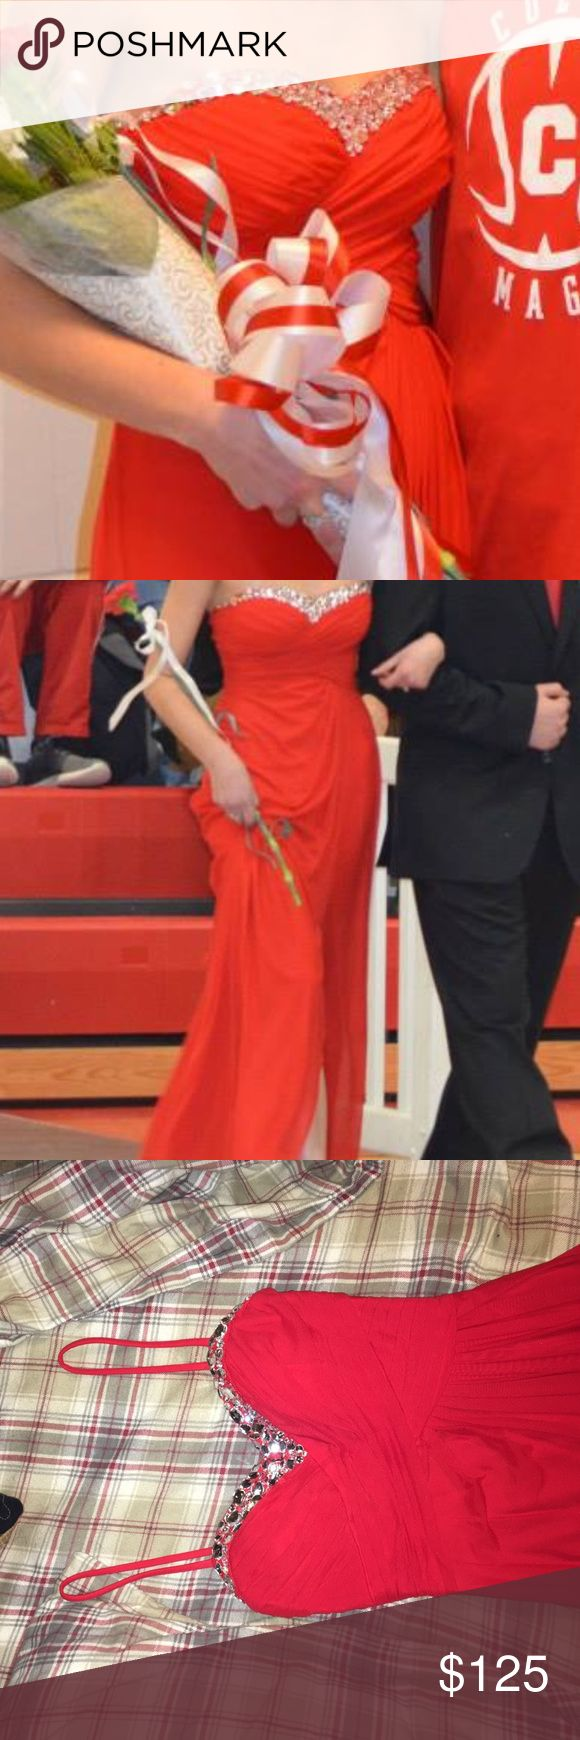 Prom Dress Simple but elegant red prom dress. Tag says it's a 1/2 but probably fits more like a 0. Has slit on the left side, and partially open back. Worn once, but only for a couple hours. No gems are falling off and it's in perfect condition Hailey Logan Dresses Prom